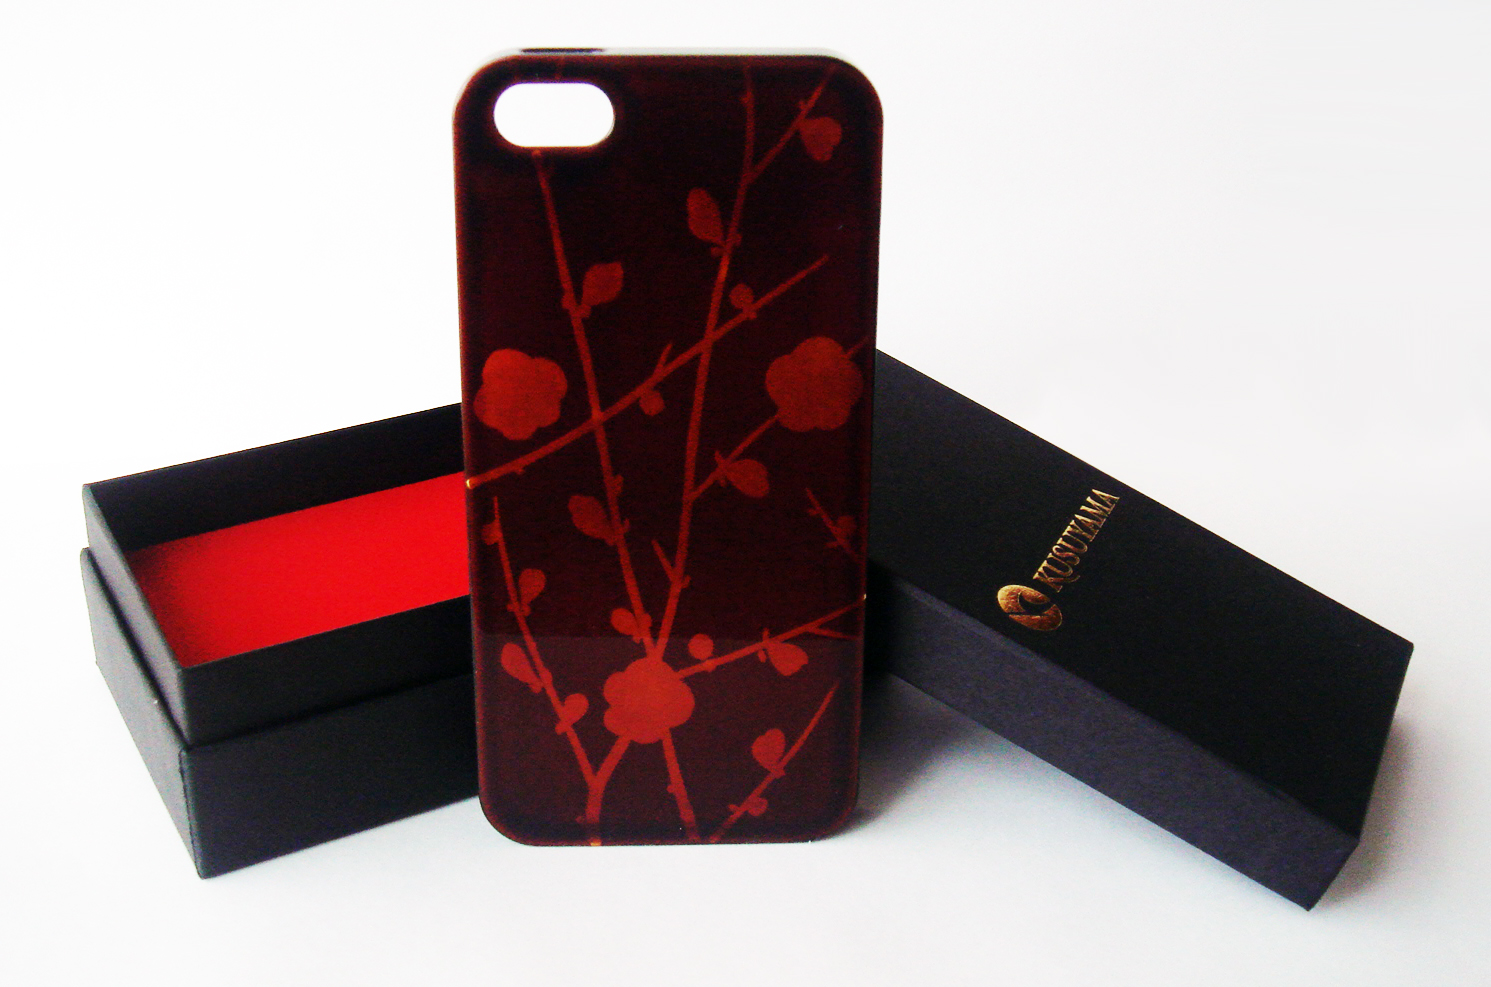 Maki-e iPhone 5 Cover Case Made in Japan - Eda Ume (Plum